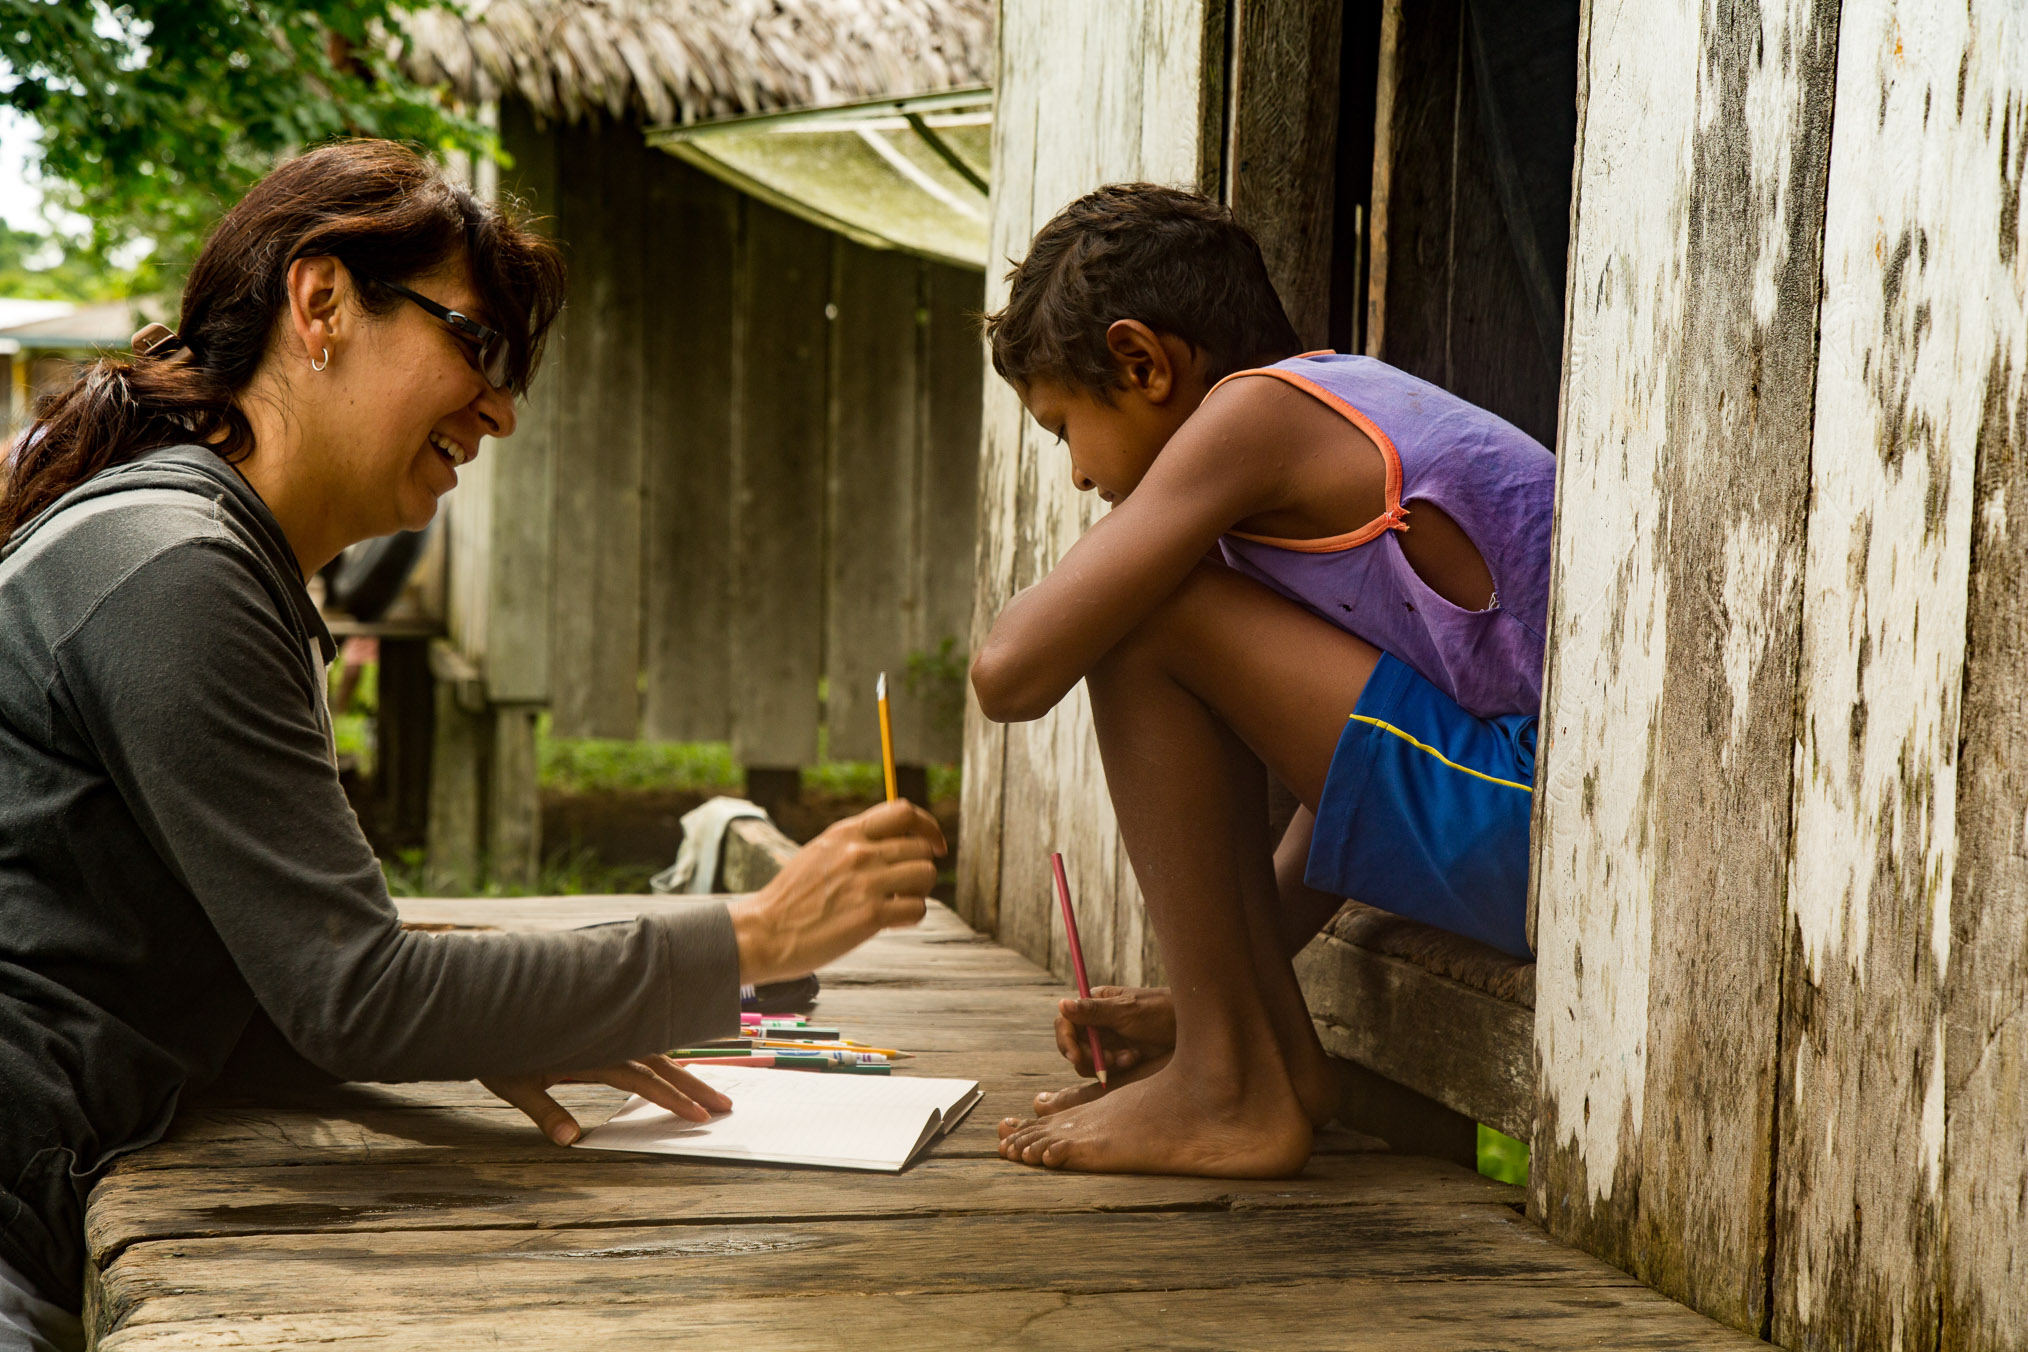 Mexican scientist Alejandra Duarte works with riberinho families to understand their use of resources from the surrounding rainforest and its impact on primates.